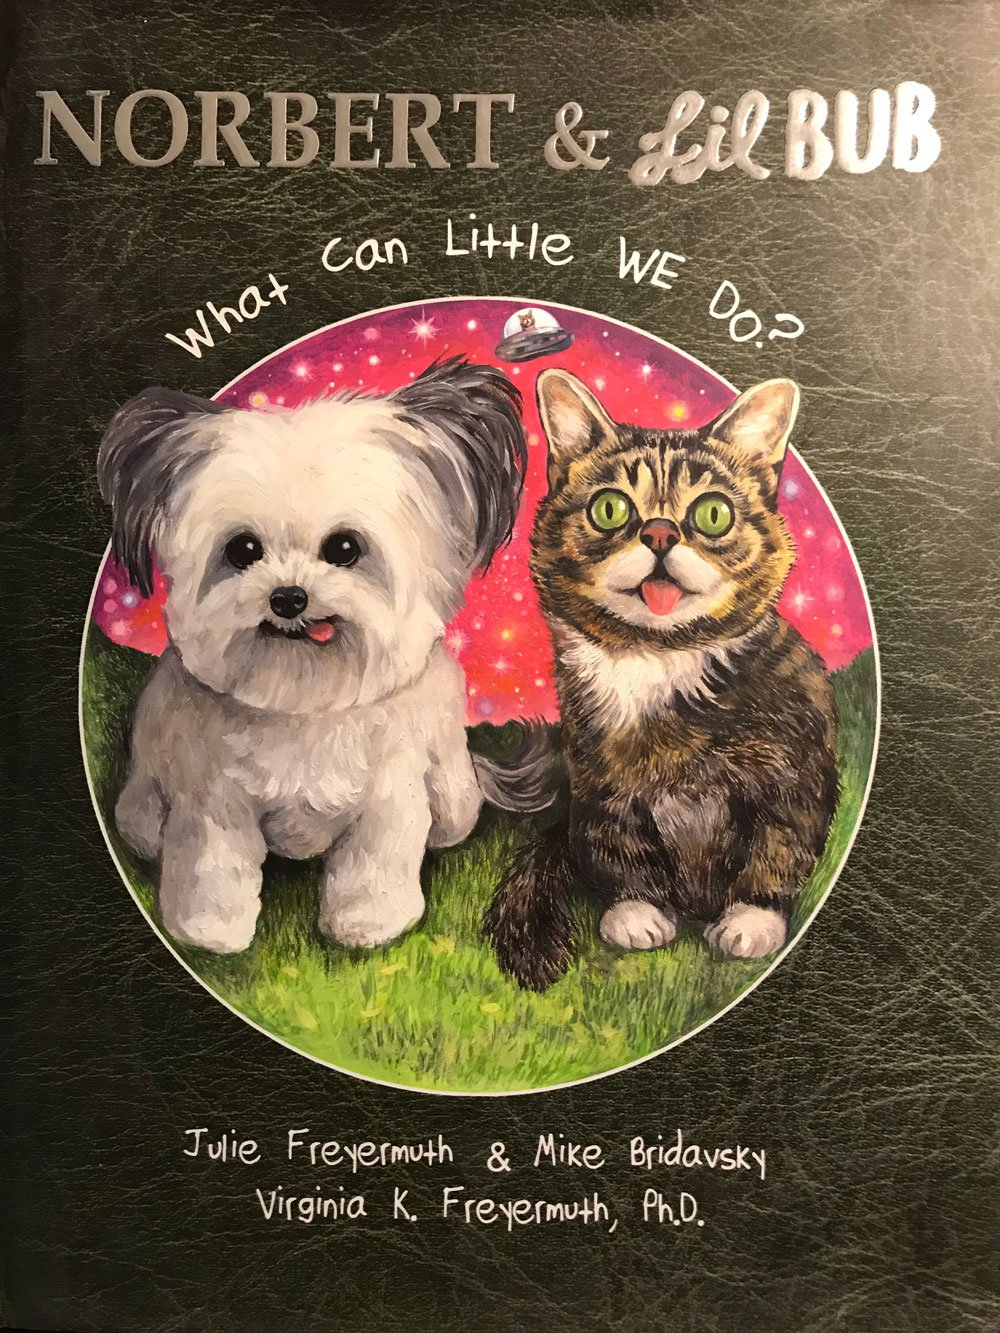 Download Norbert & Lil Bub What Can Little We Do? PDF